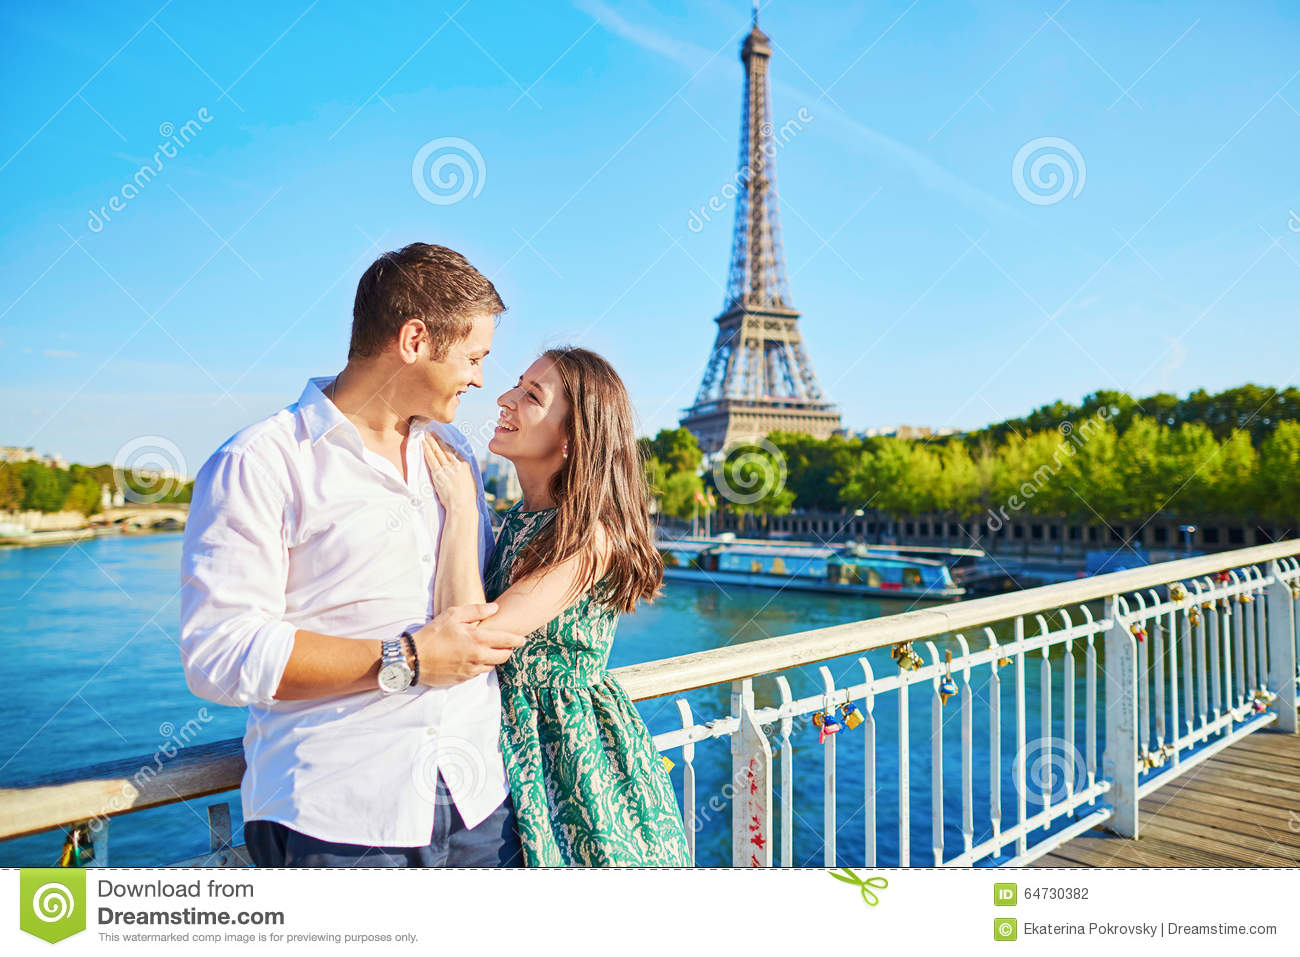 Hd Wallpapers Of Cute Kissing Couples Young Romantic Couple Spending Their Vacation In Paris